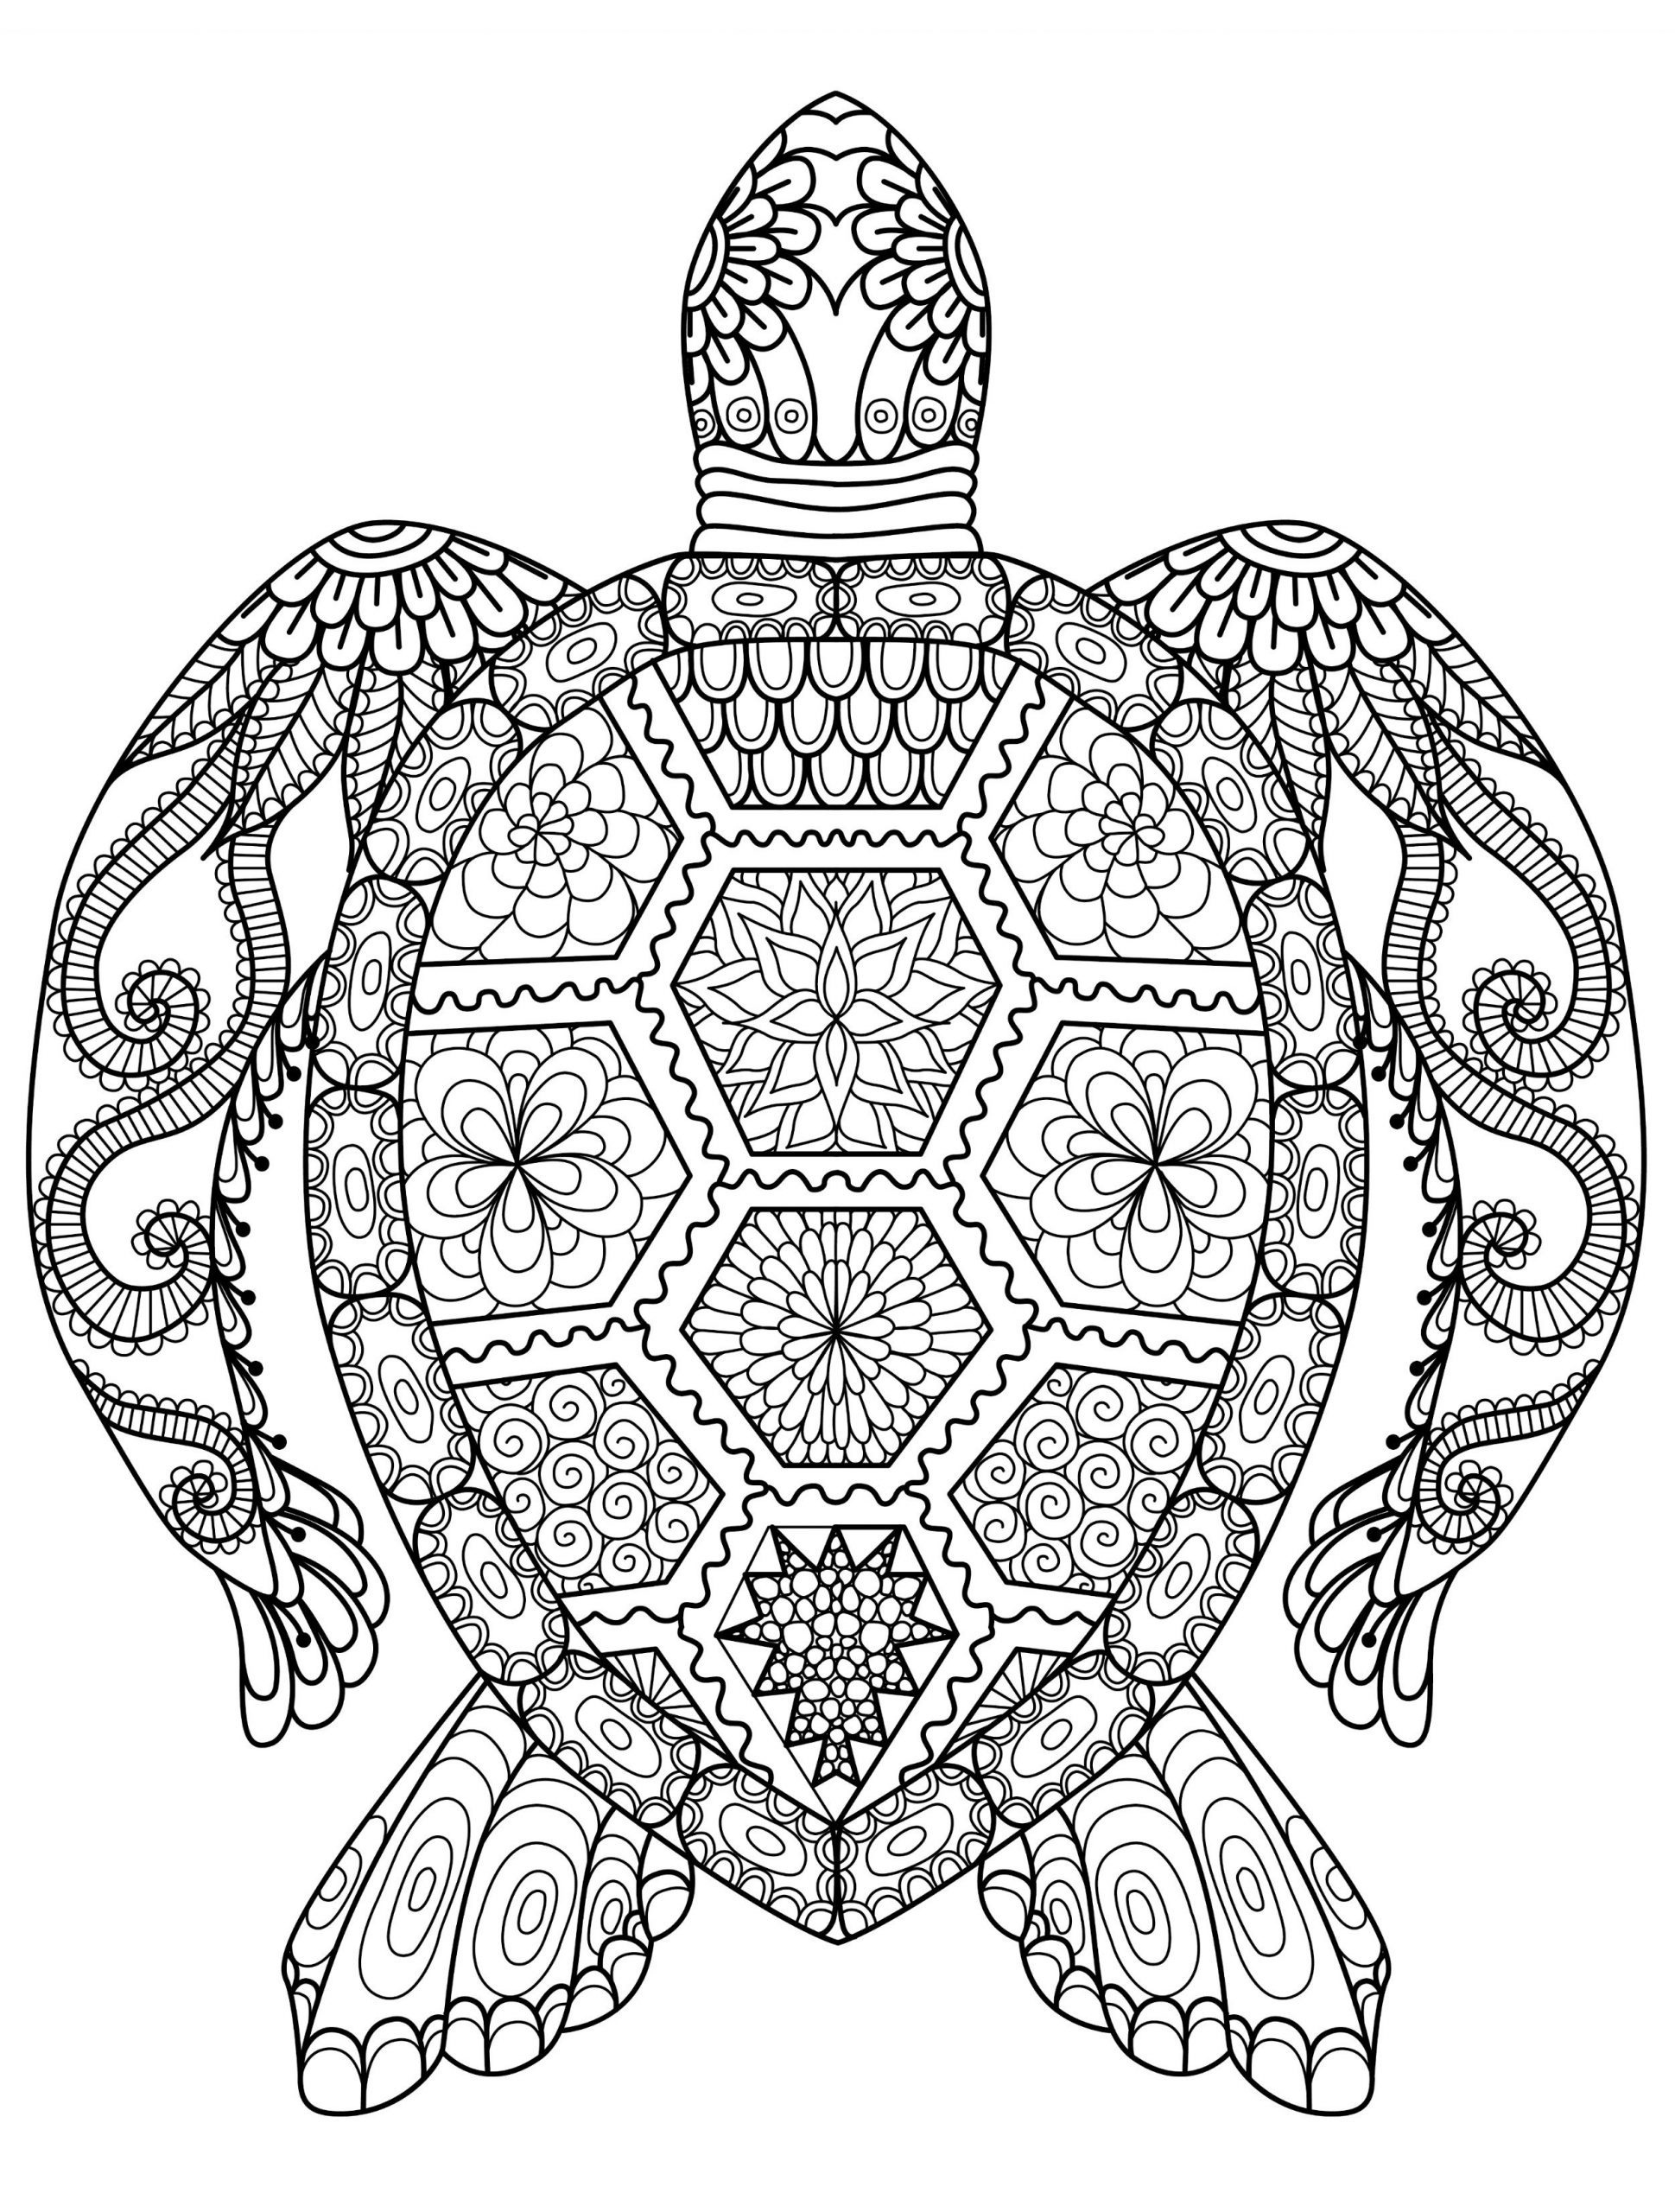 Coloring Book Pages for Kids Turtle